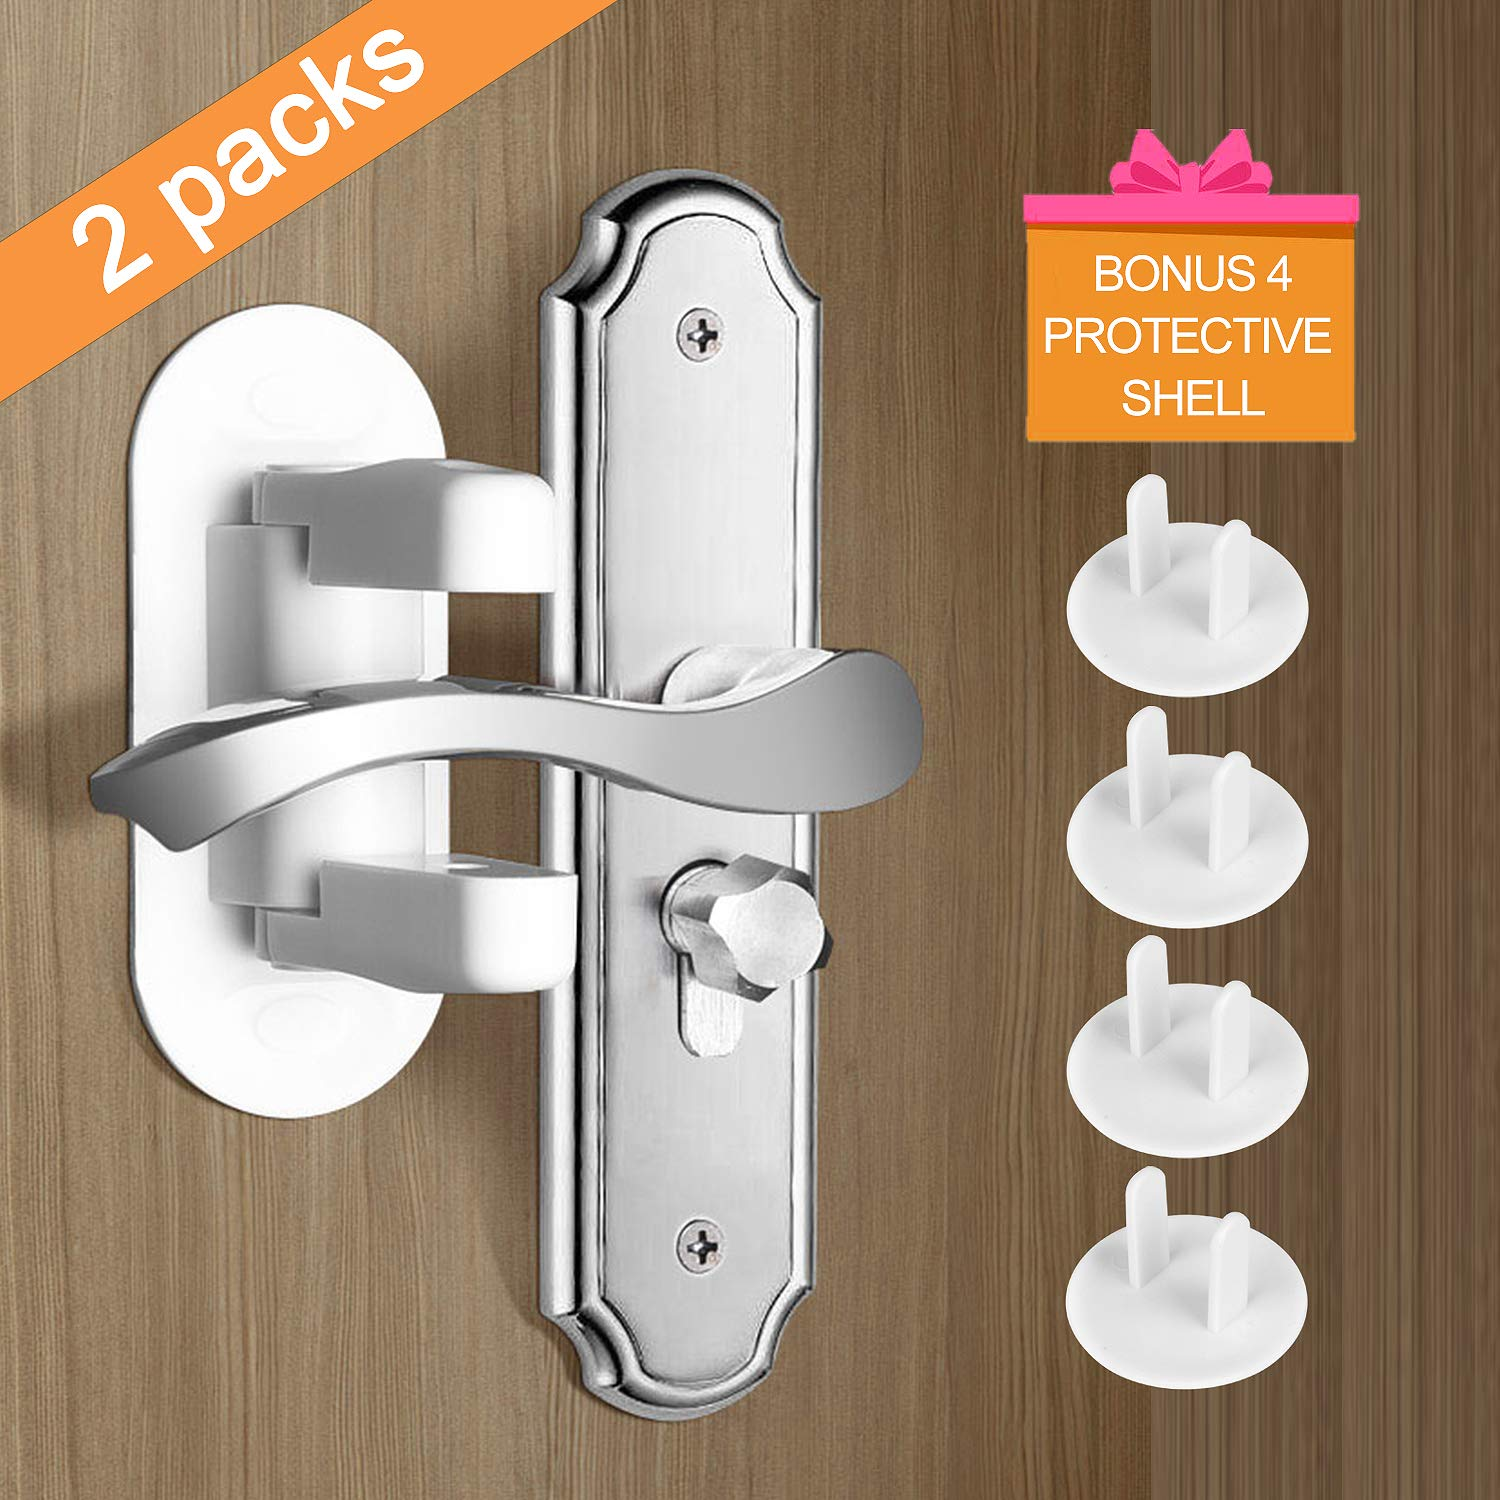 MAOMAO 2 Pack Door Lever Lock, Child Proof Door Handle Locks Child Safety 3M Adhesive with 4pcs Baby Outlet Plug Covers for Gift